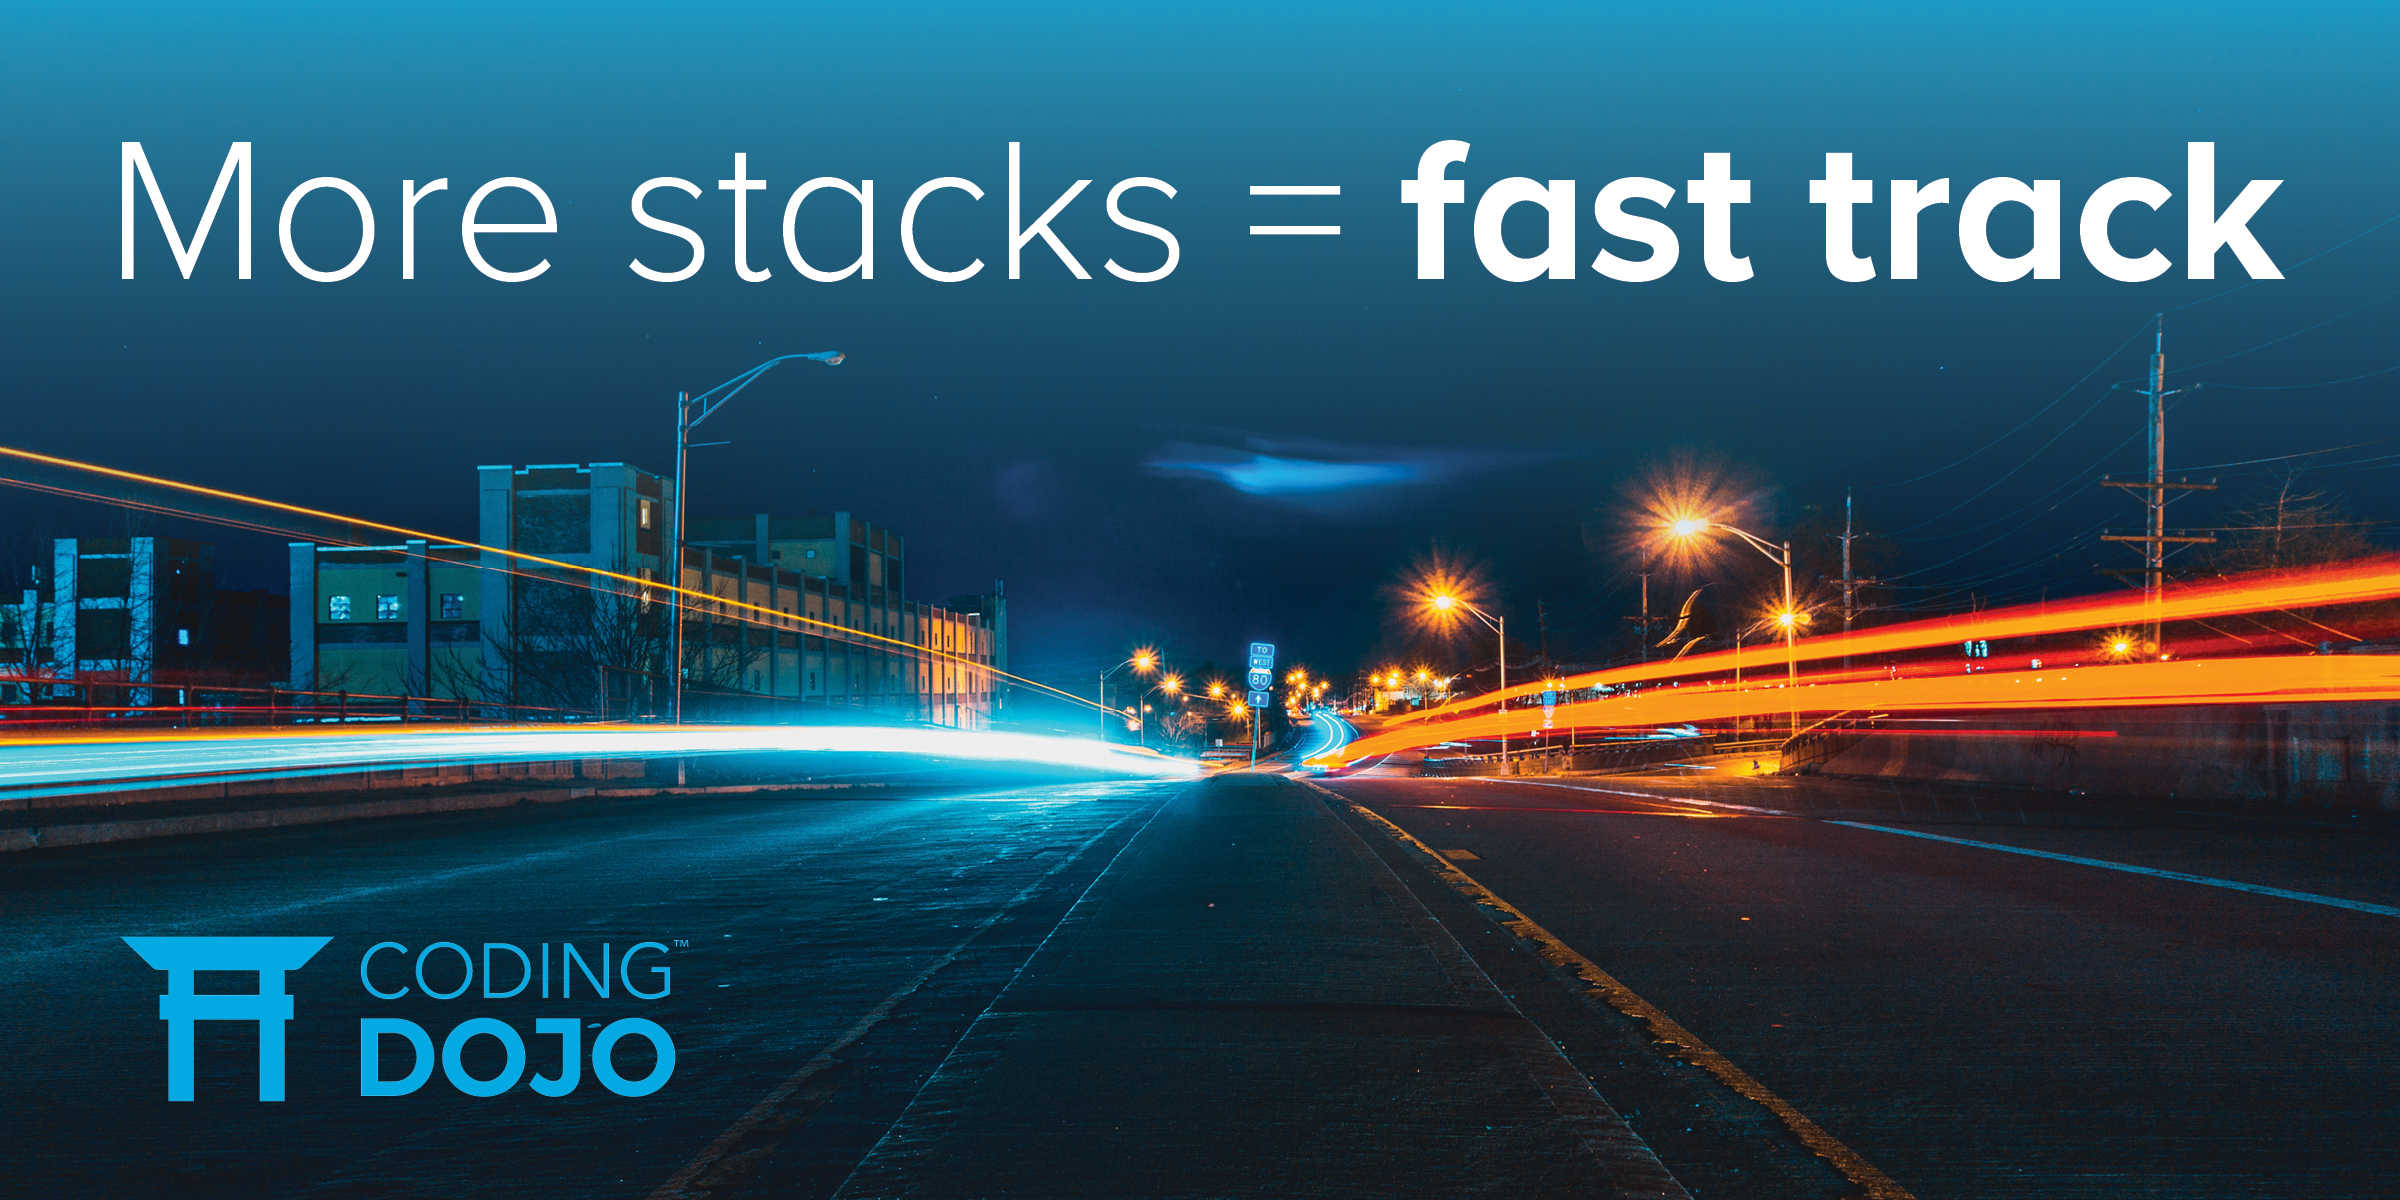 Learning more stacks puts you on the fast track